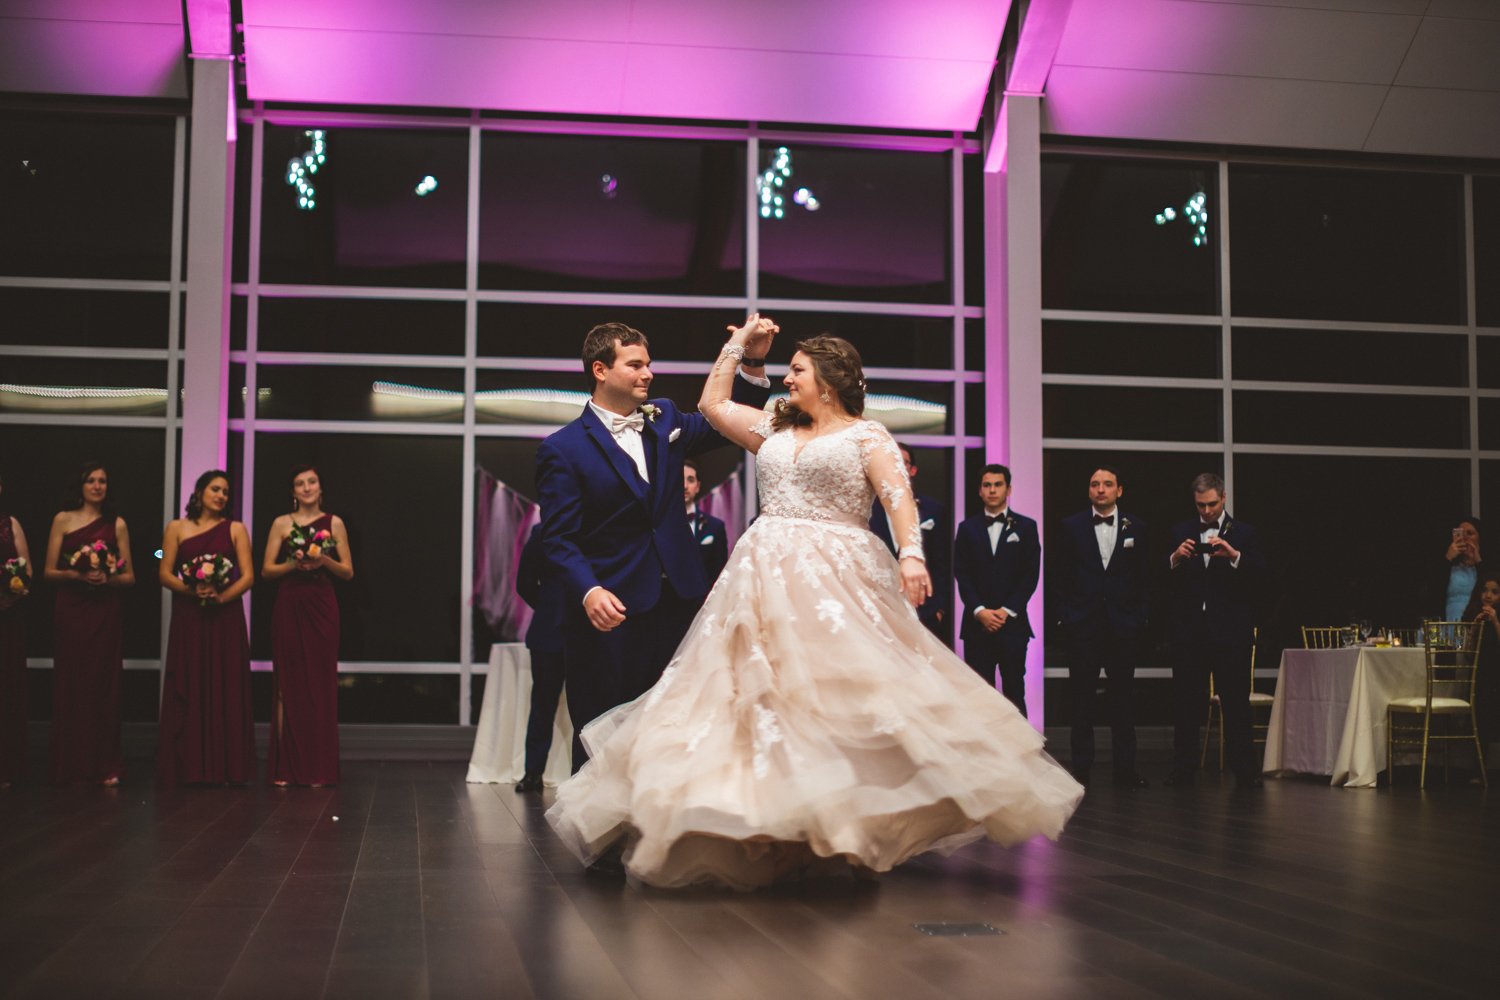 082 - bride and groom first dance - baltimore and washington dc wedding photographer nathan mitchell.jpg